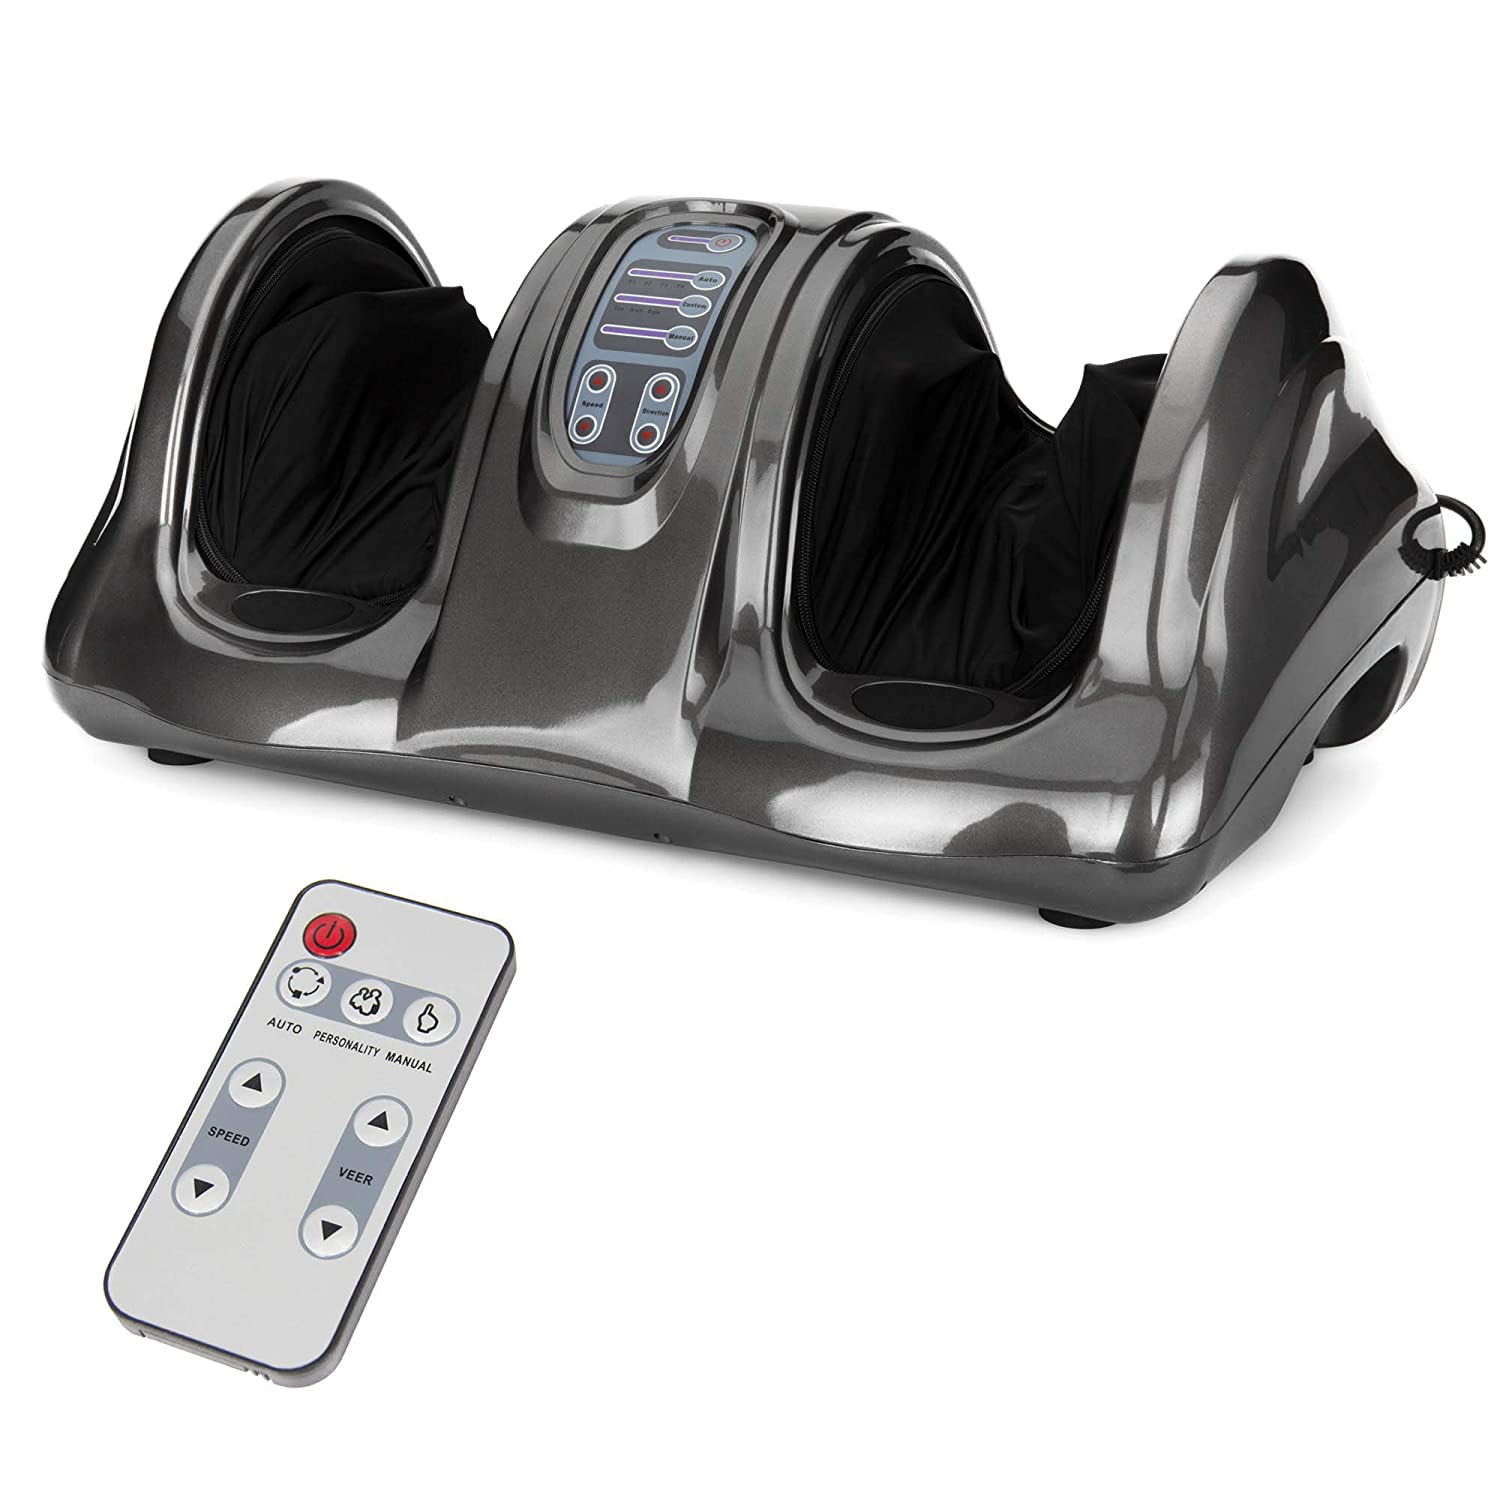 Best Choice Products Therapeutic Kneading & Rolling Shiatsu Foot Massager w/High Intensity Rollers, Remote - Gray